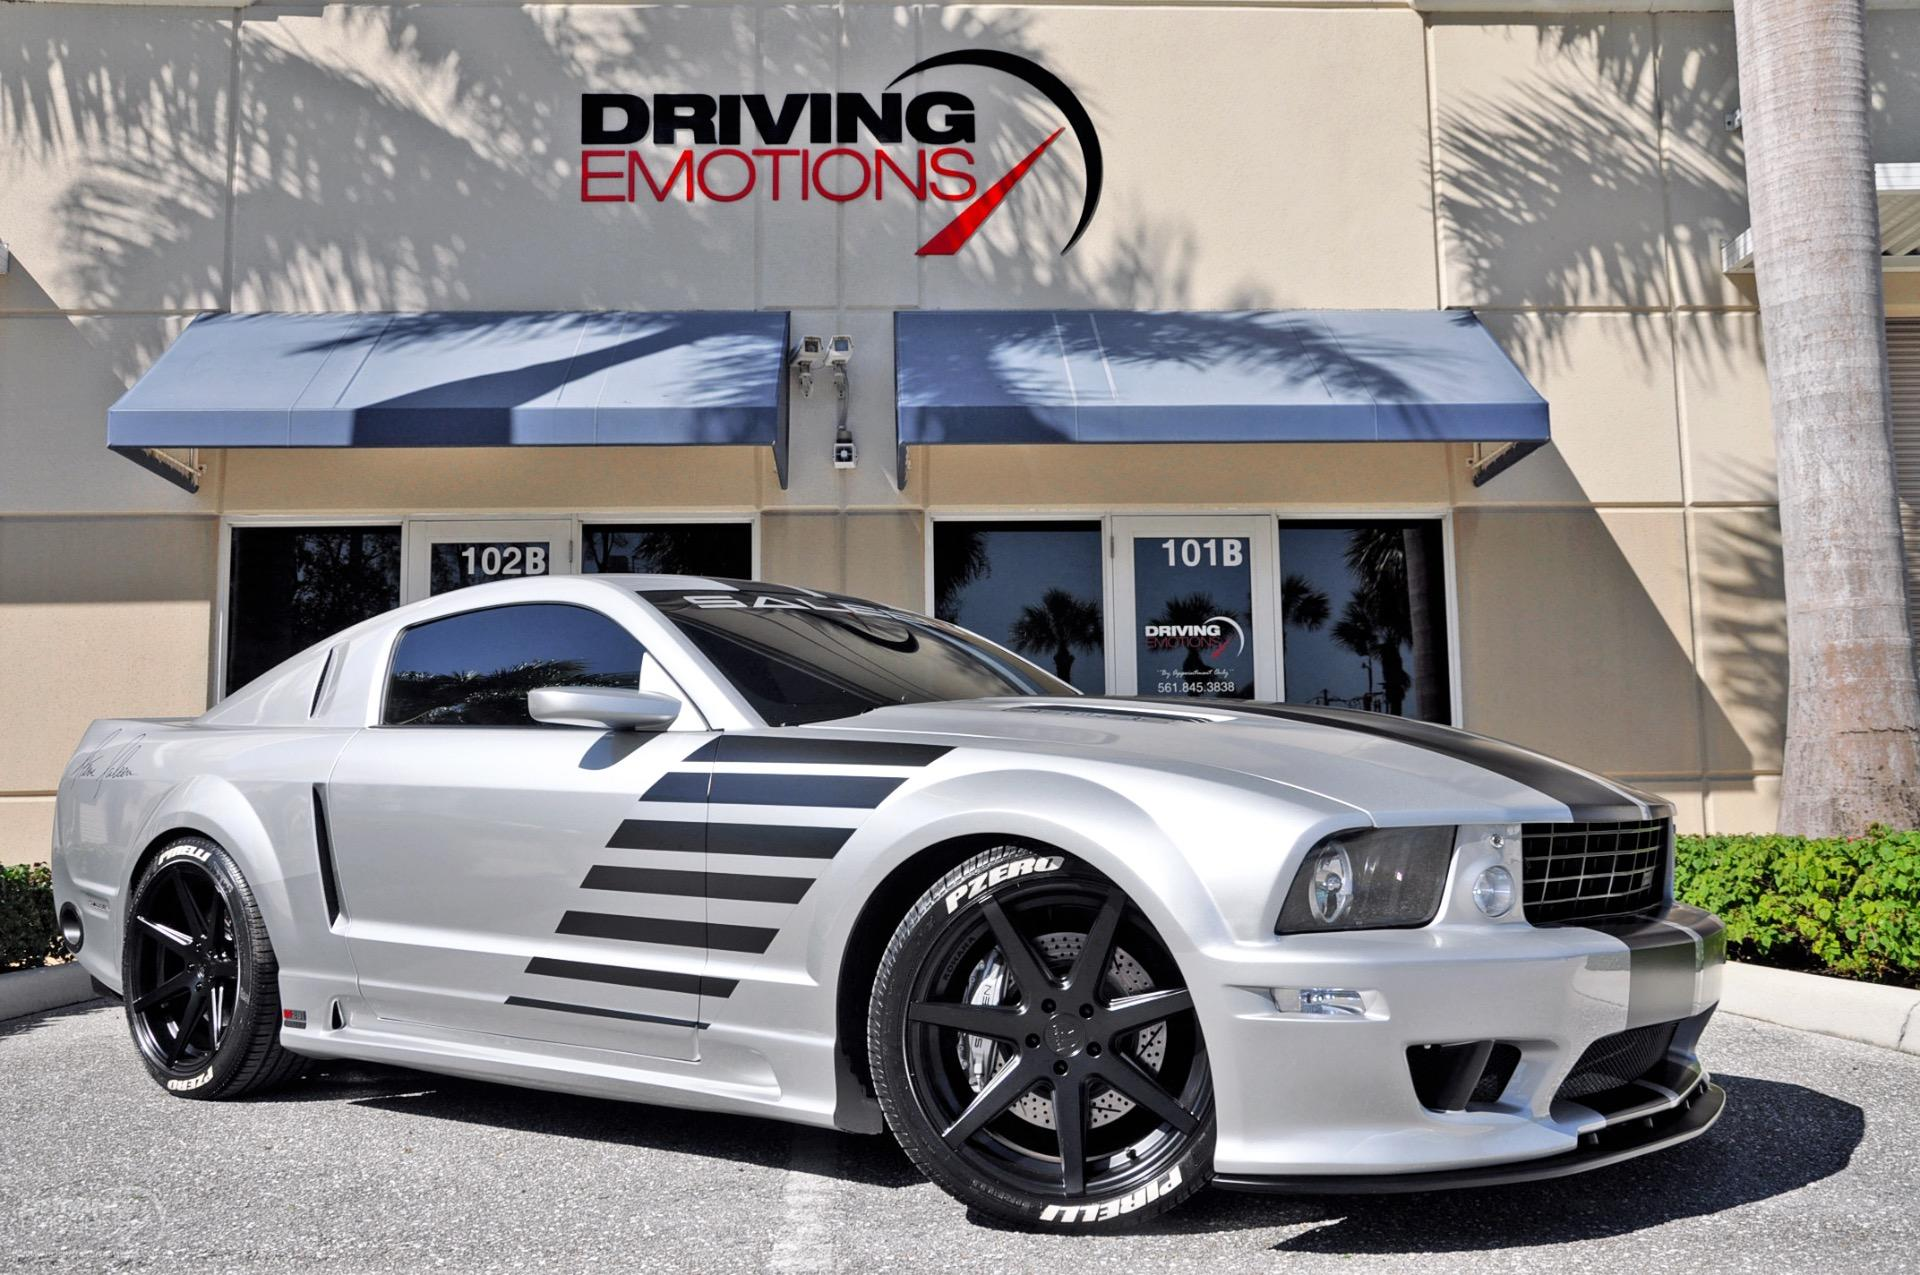 Used 2005 ford mustang saleen s281 sc coupe lake park fl